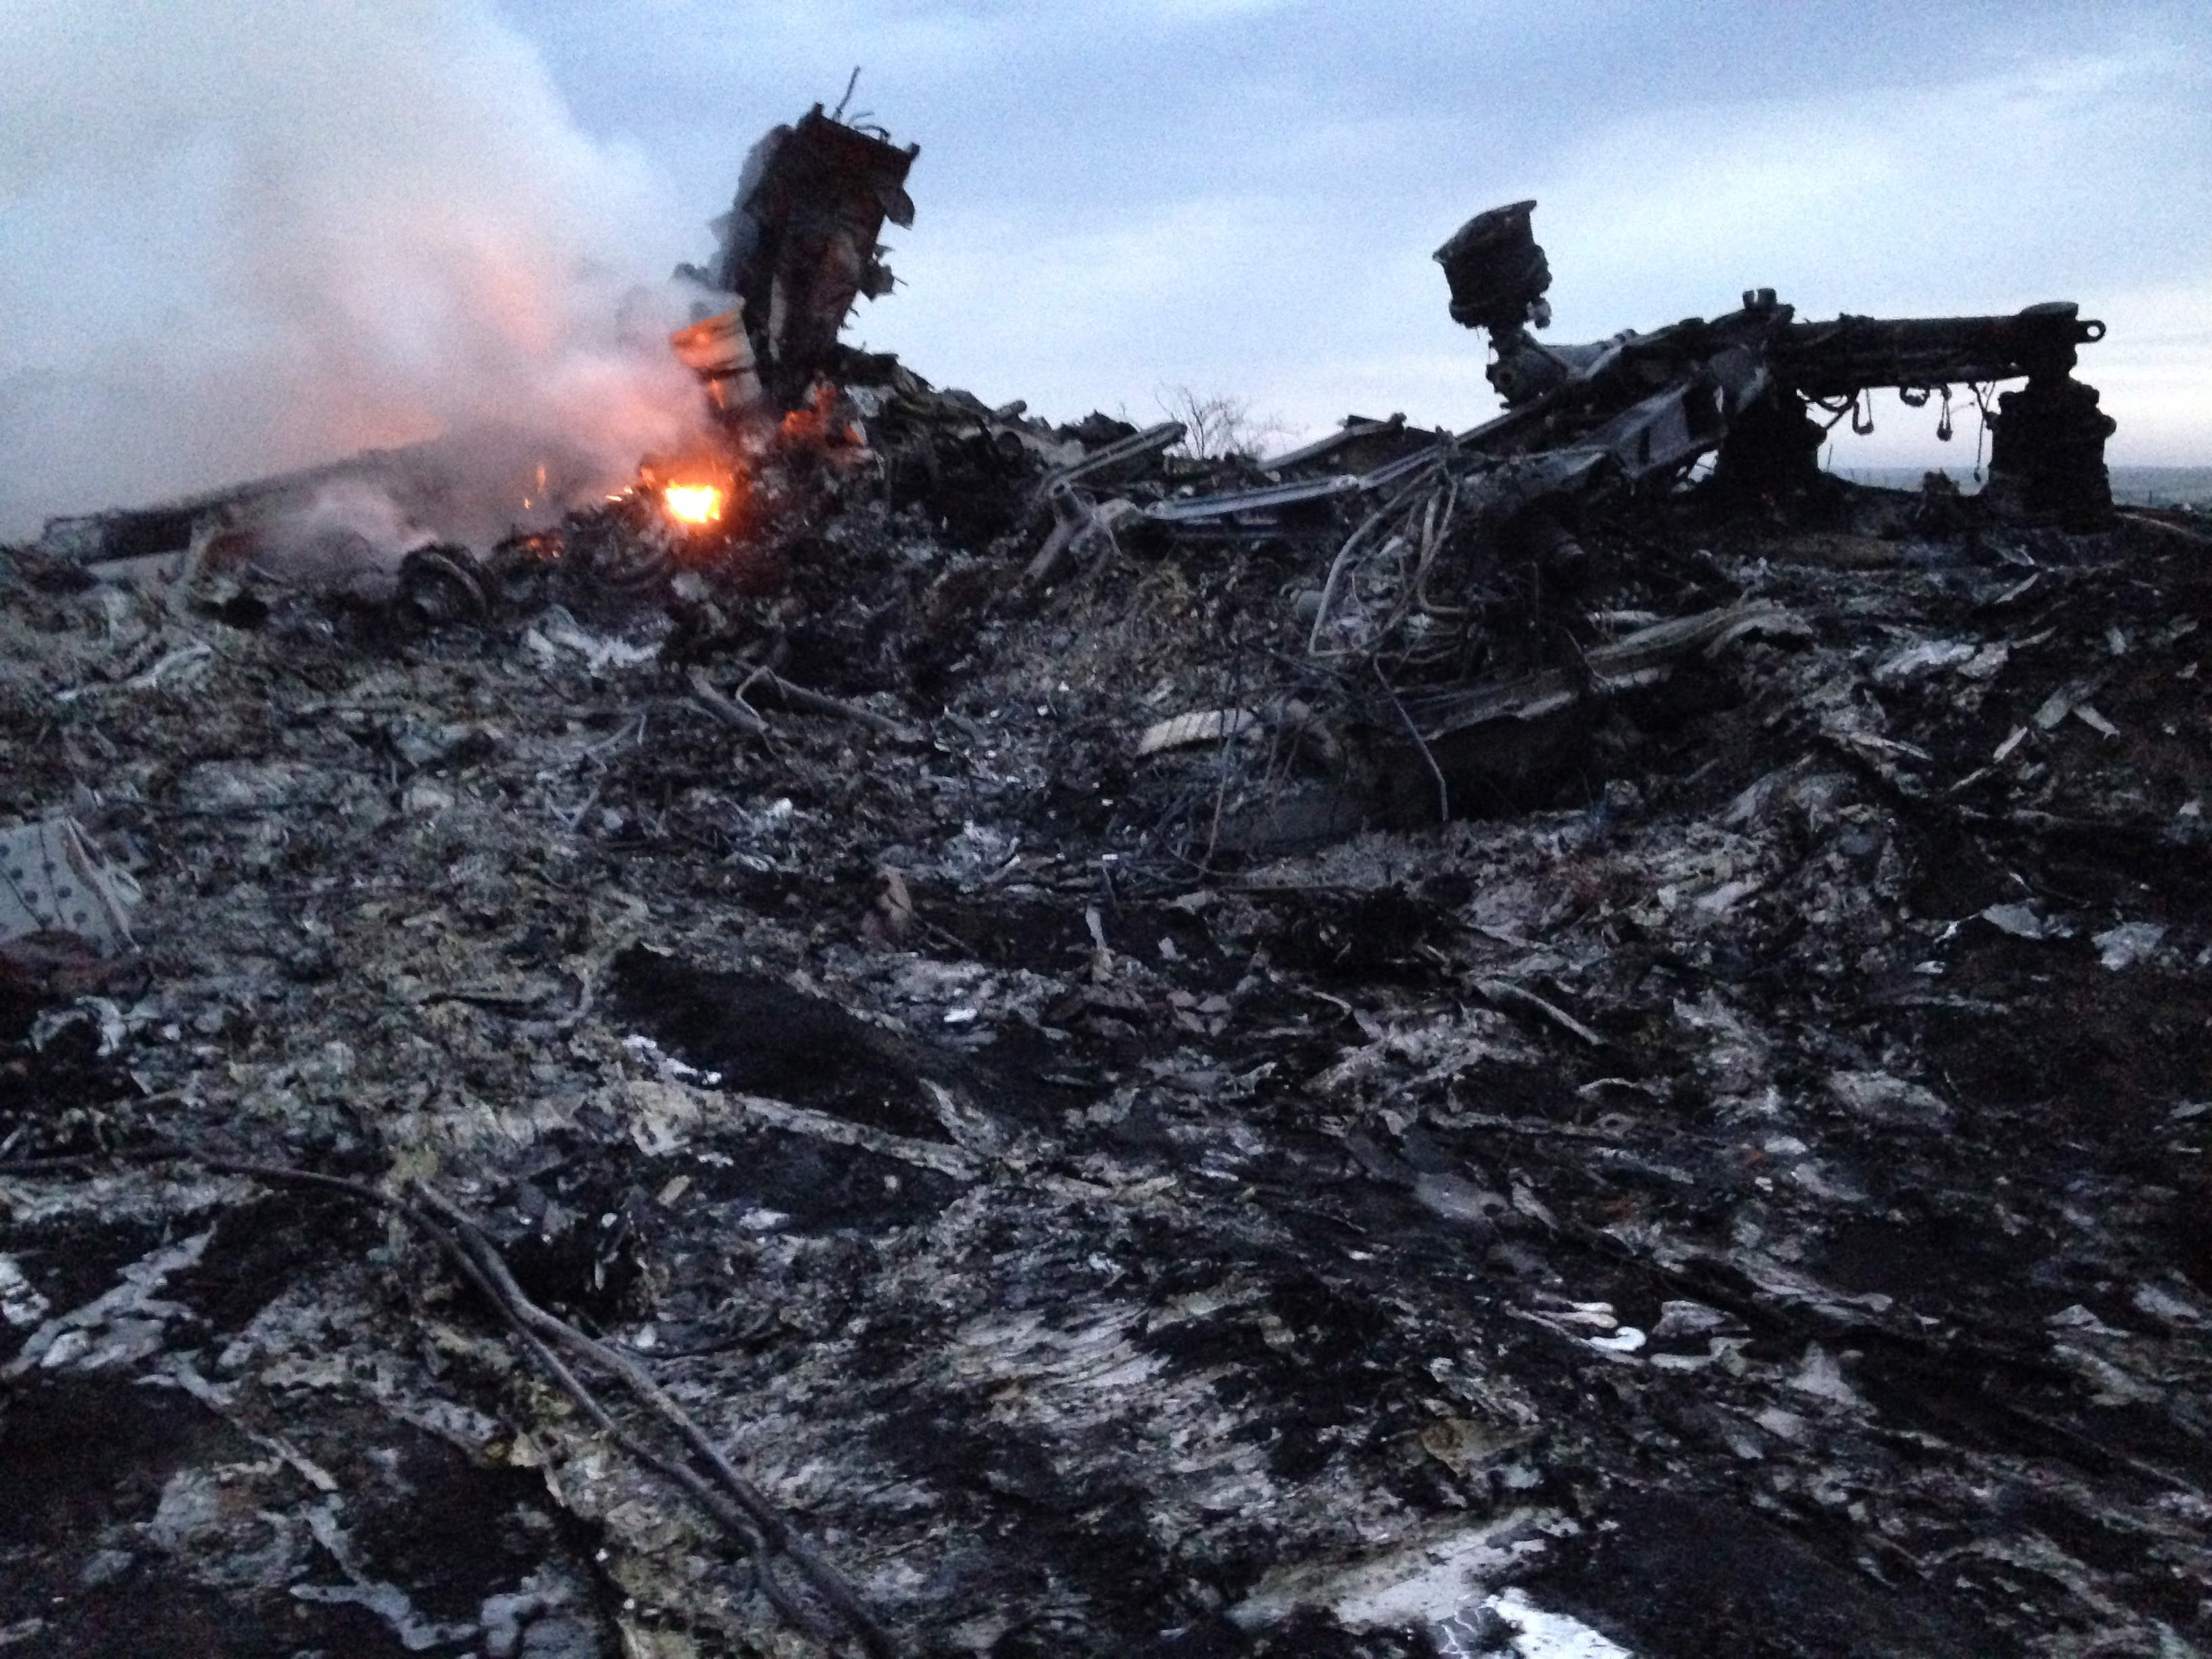 Malaysian Airlines MH17 Ukraine wreckage